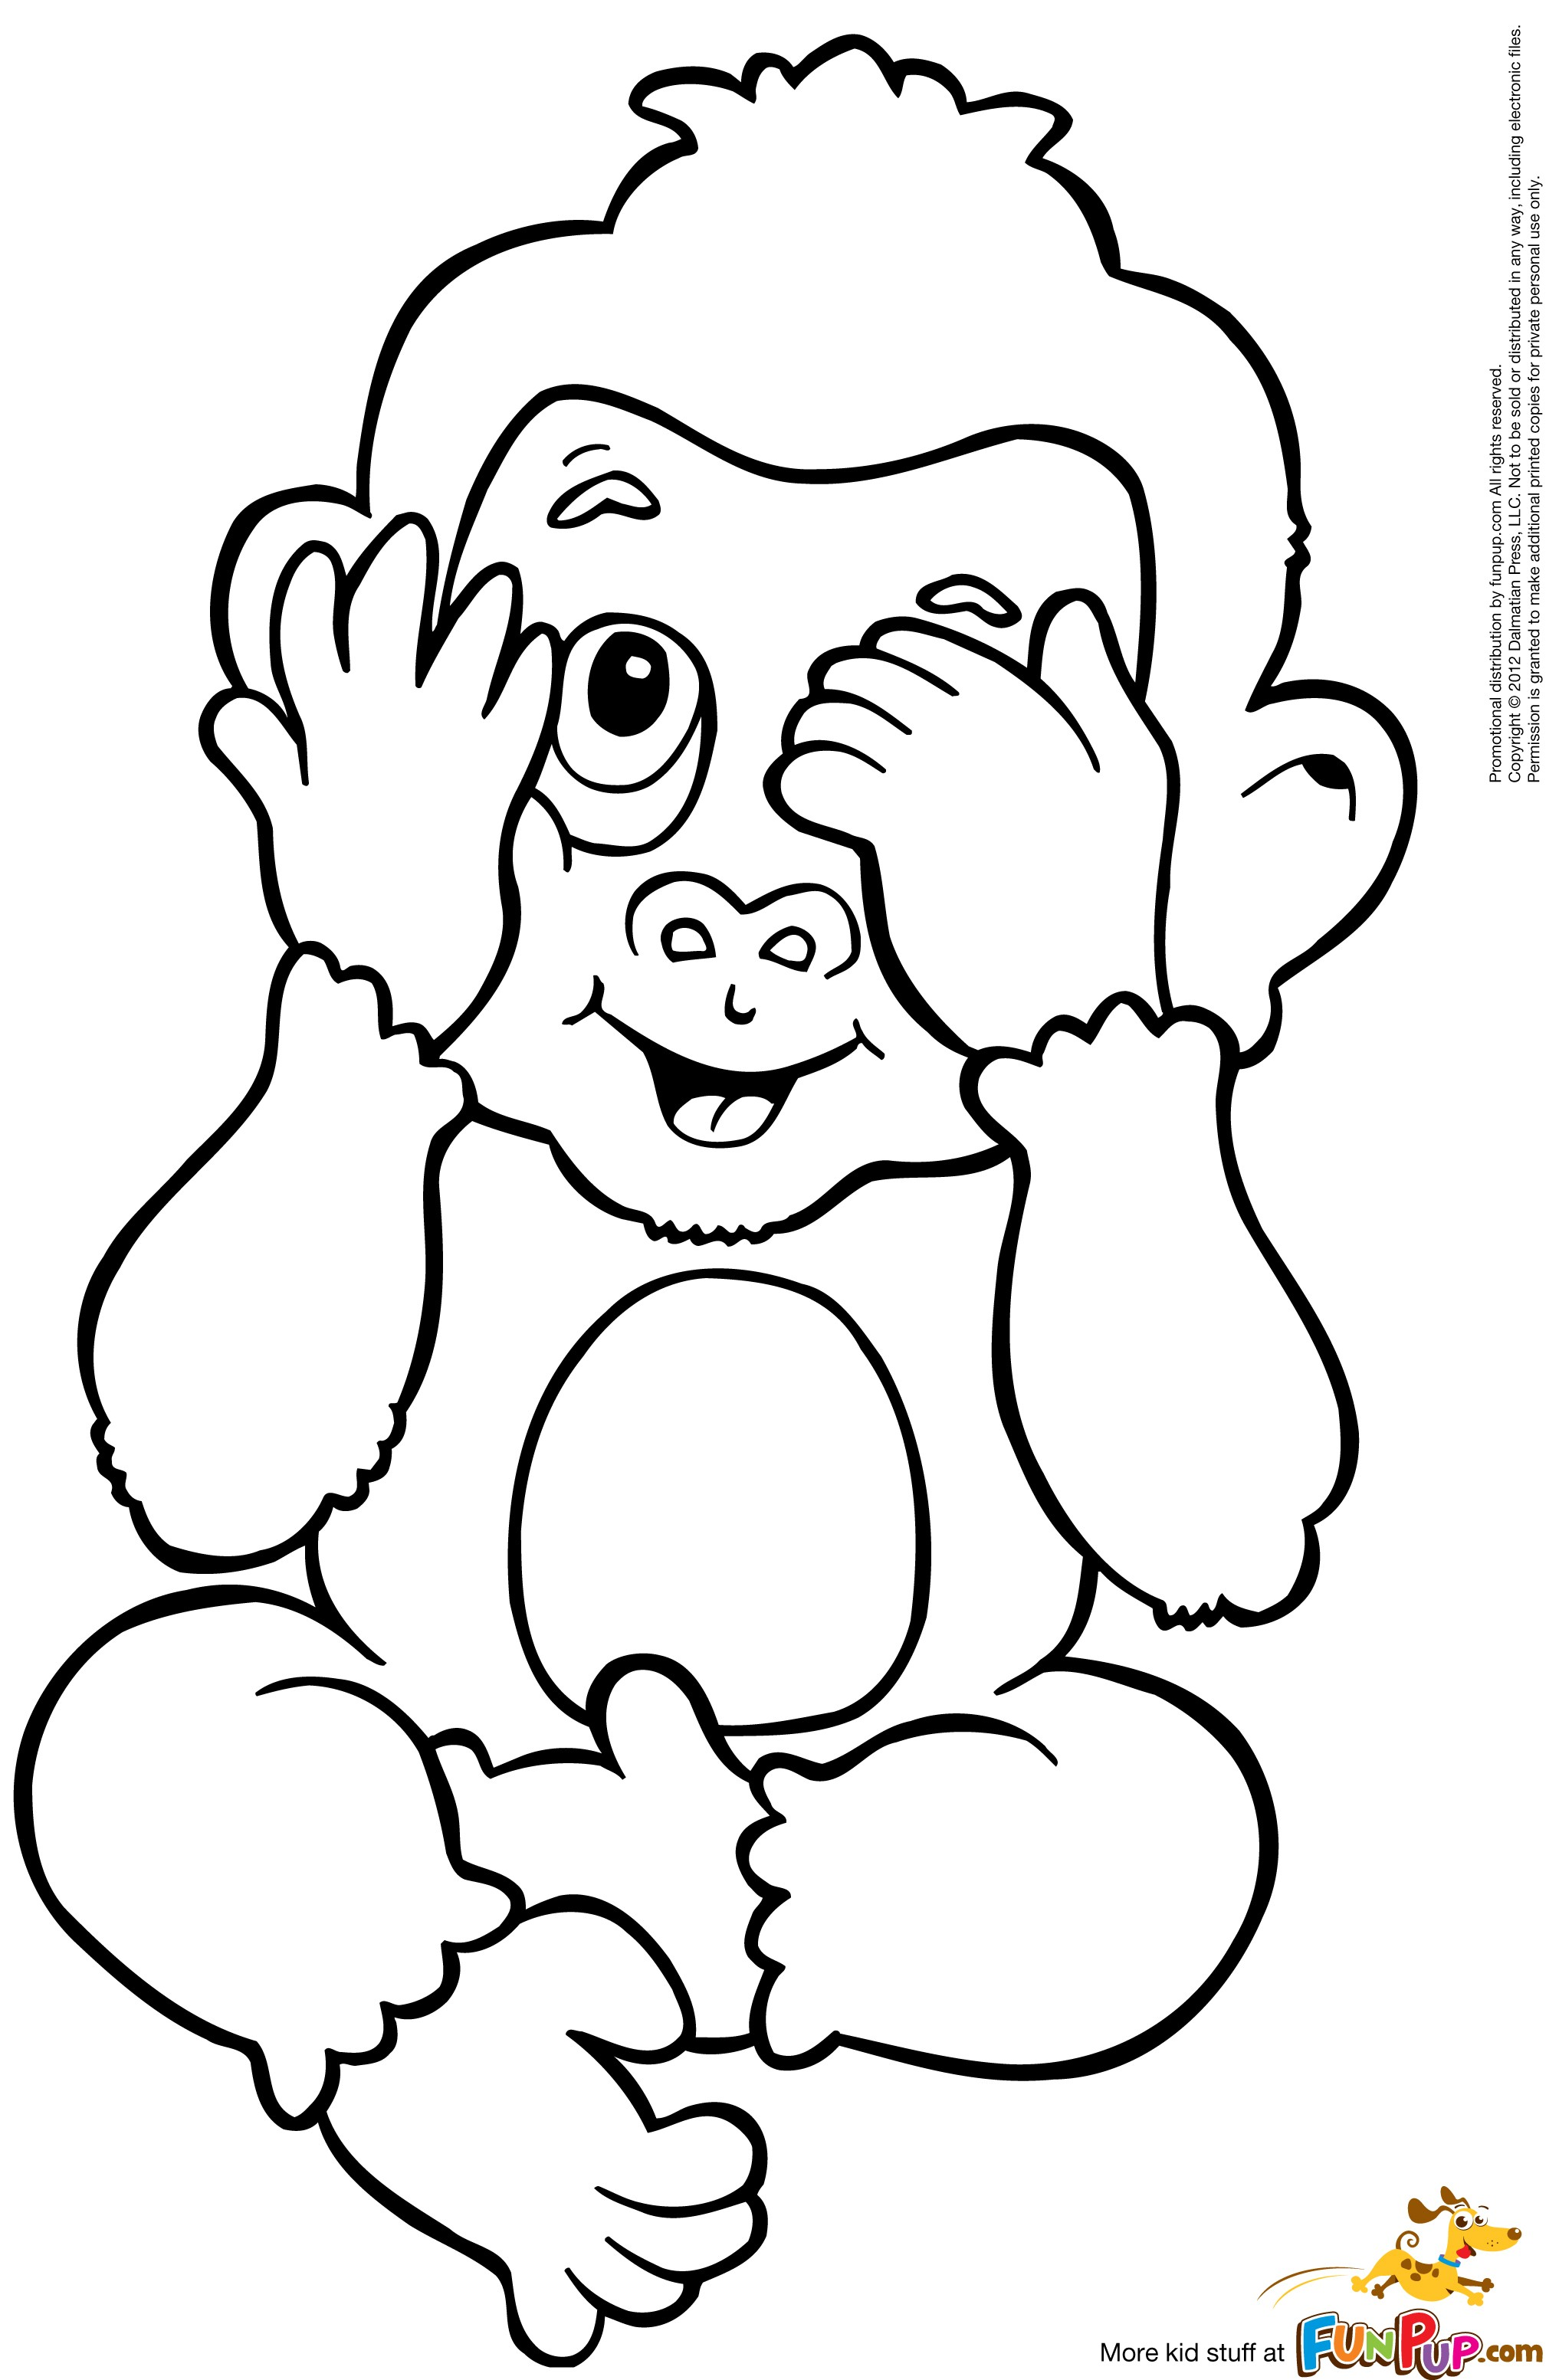 It is an image of Dashing Coloring Pages Of Monkeys